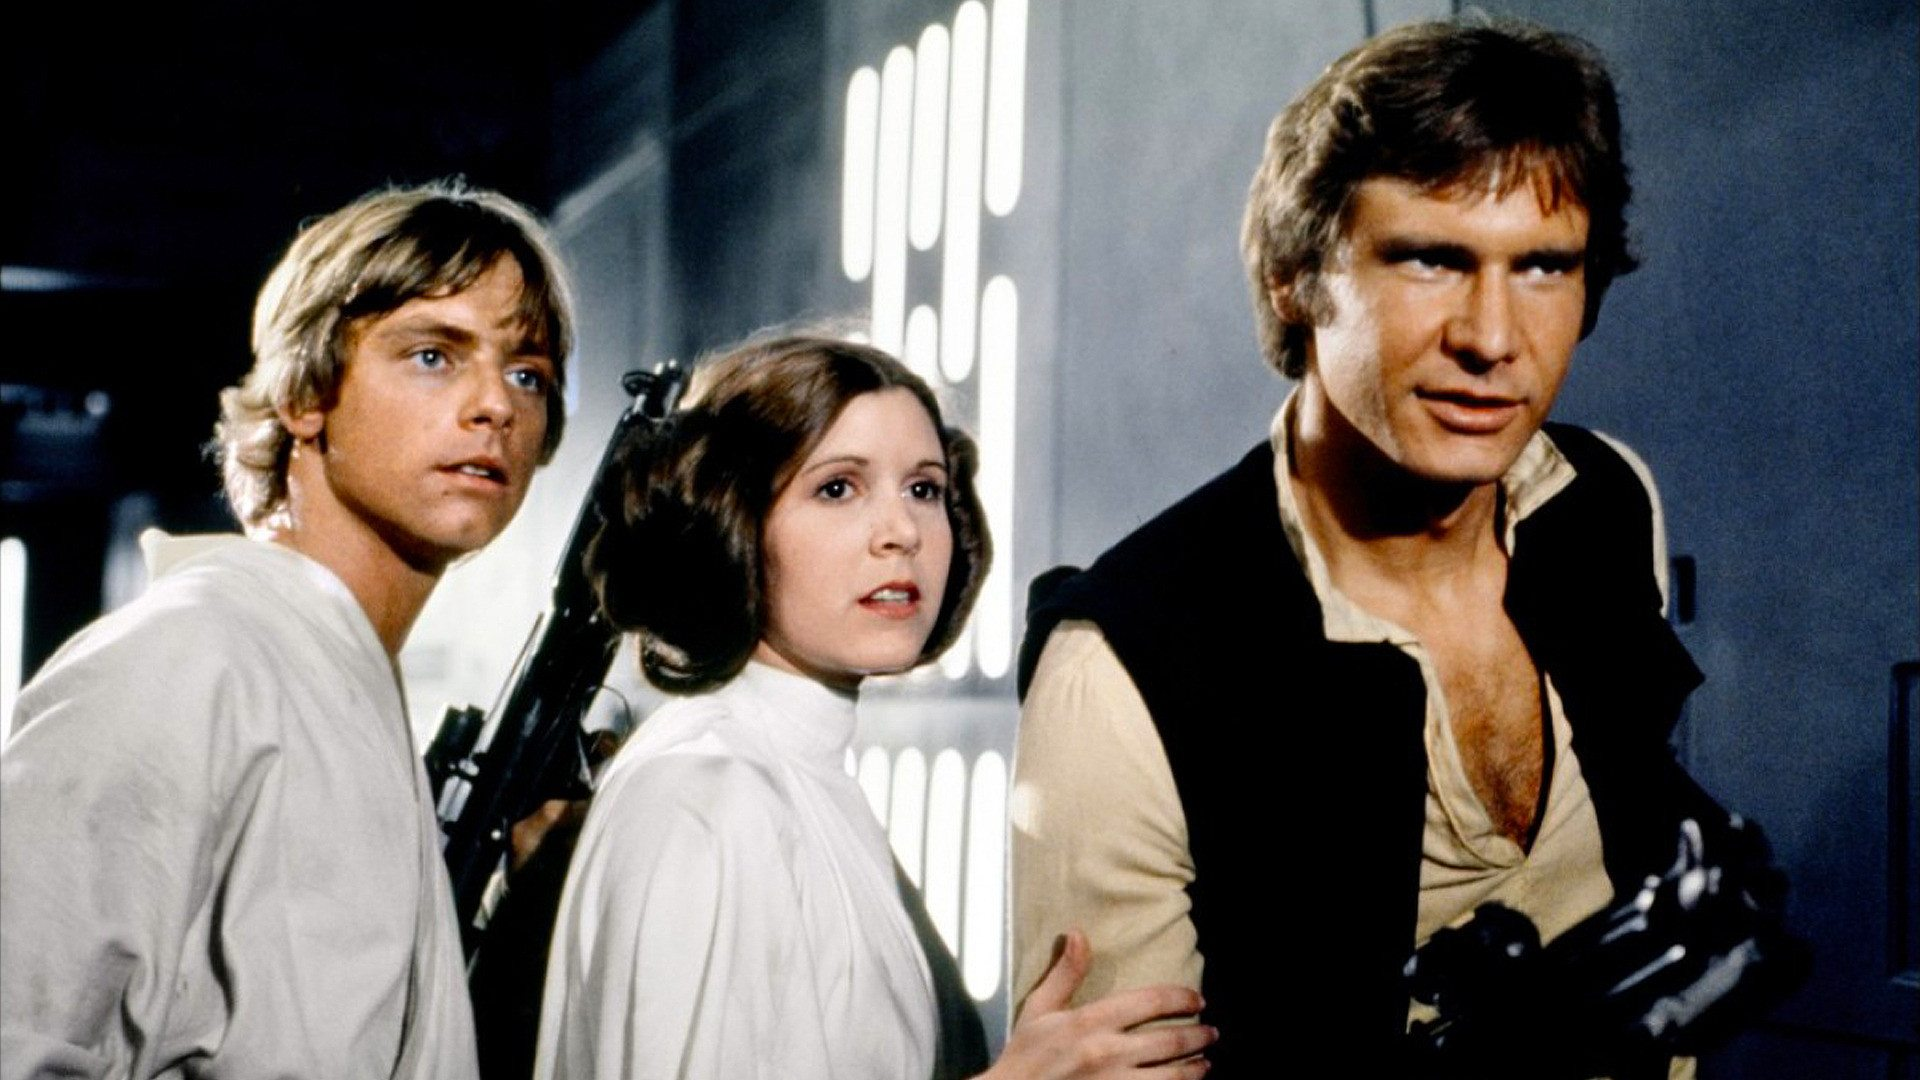 Retronalysis: Rewatching A New Hope